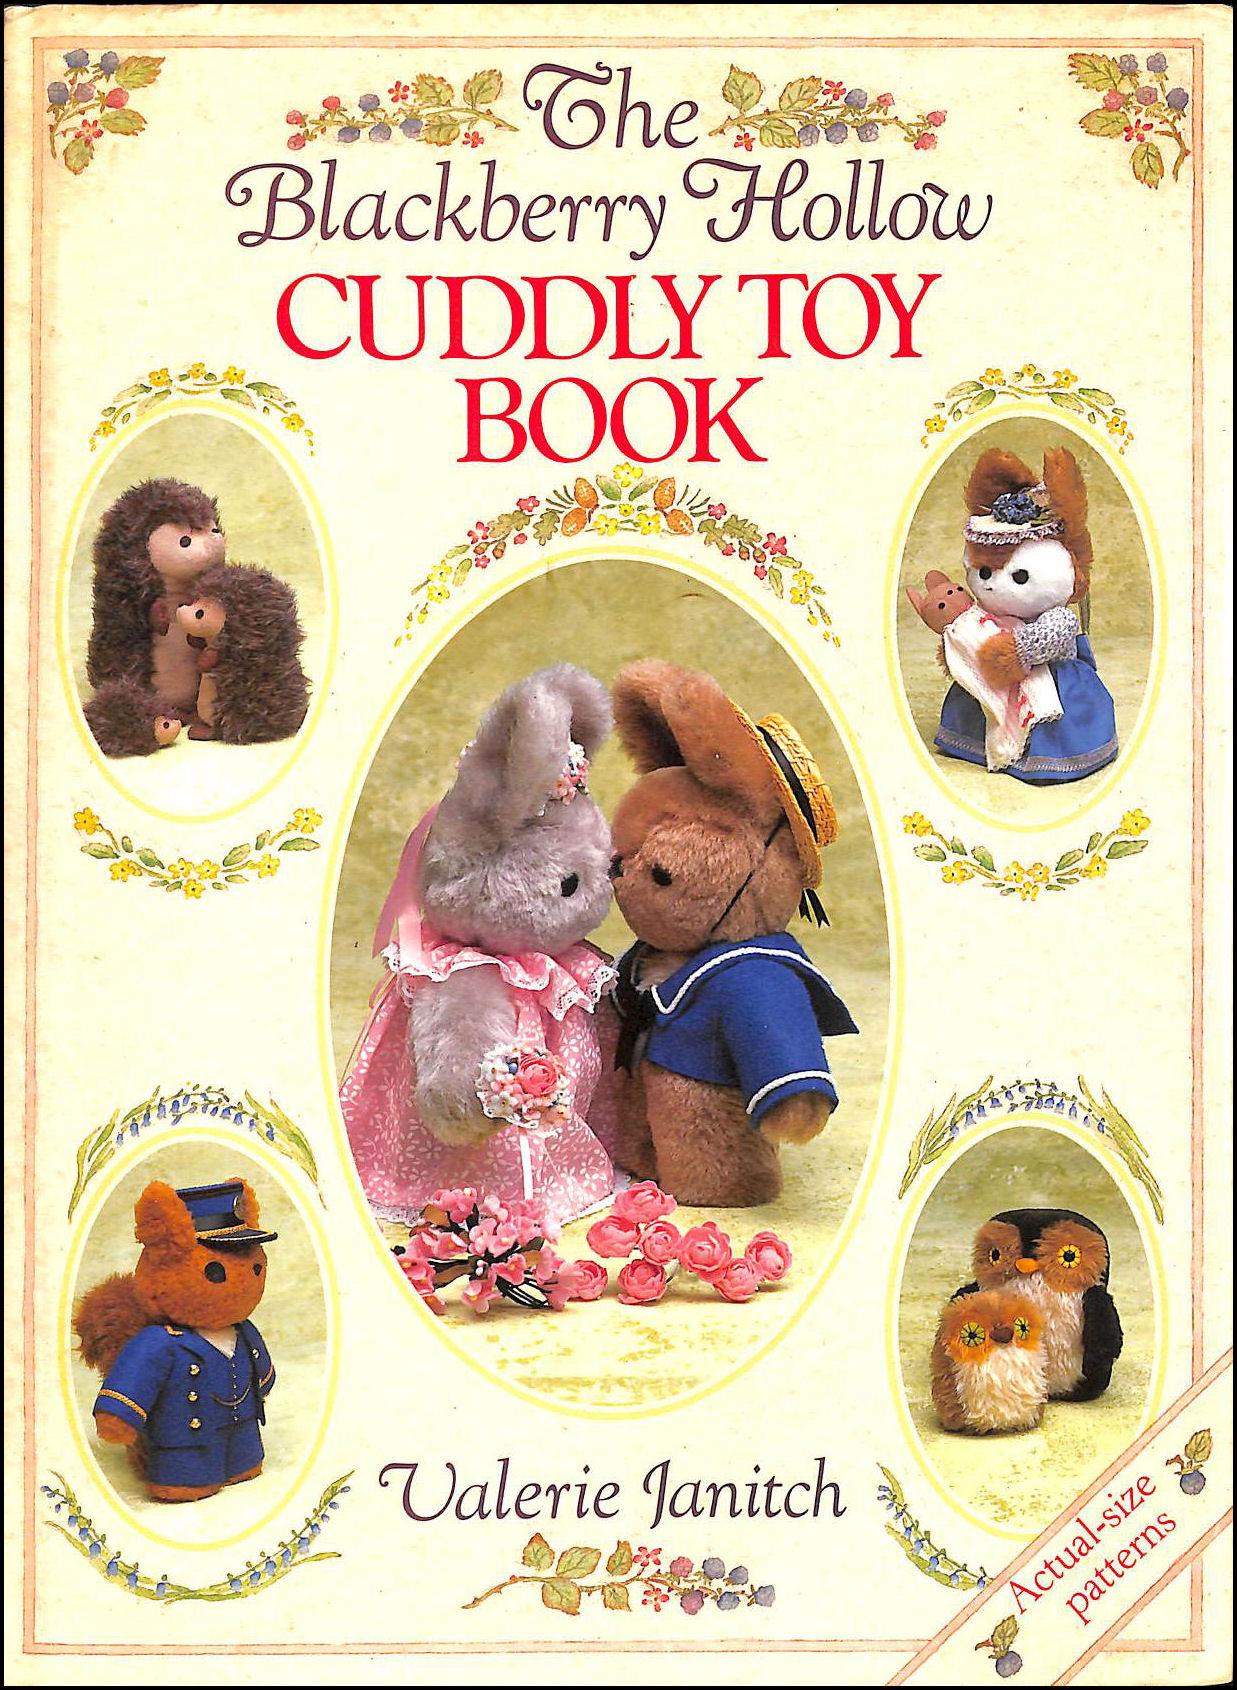 Image for The Blackberry Hollow Cuddly Toy Book (A David and Charles craft book)